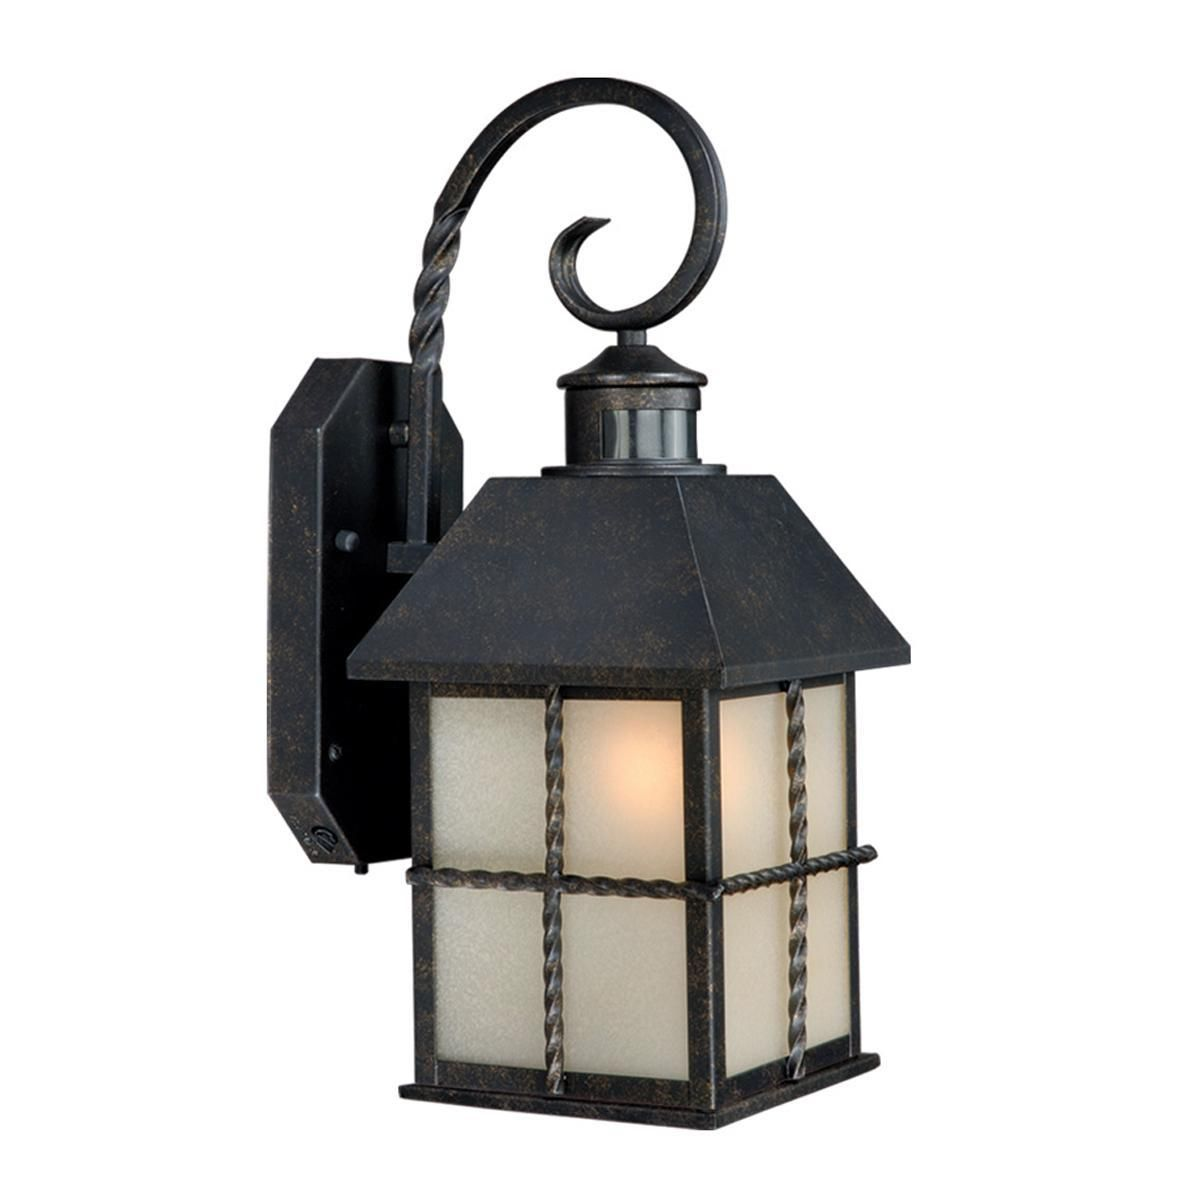 Crme glass twisted frame outdoor lantern shades of light tudor